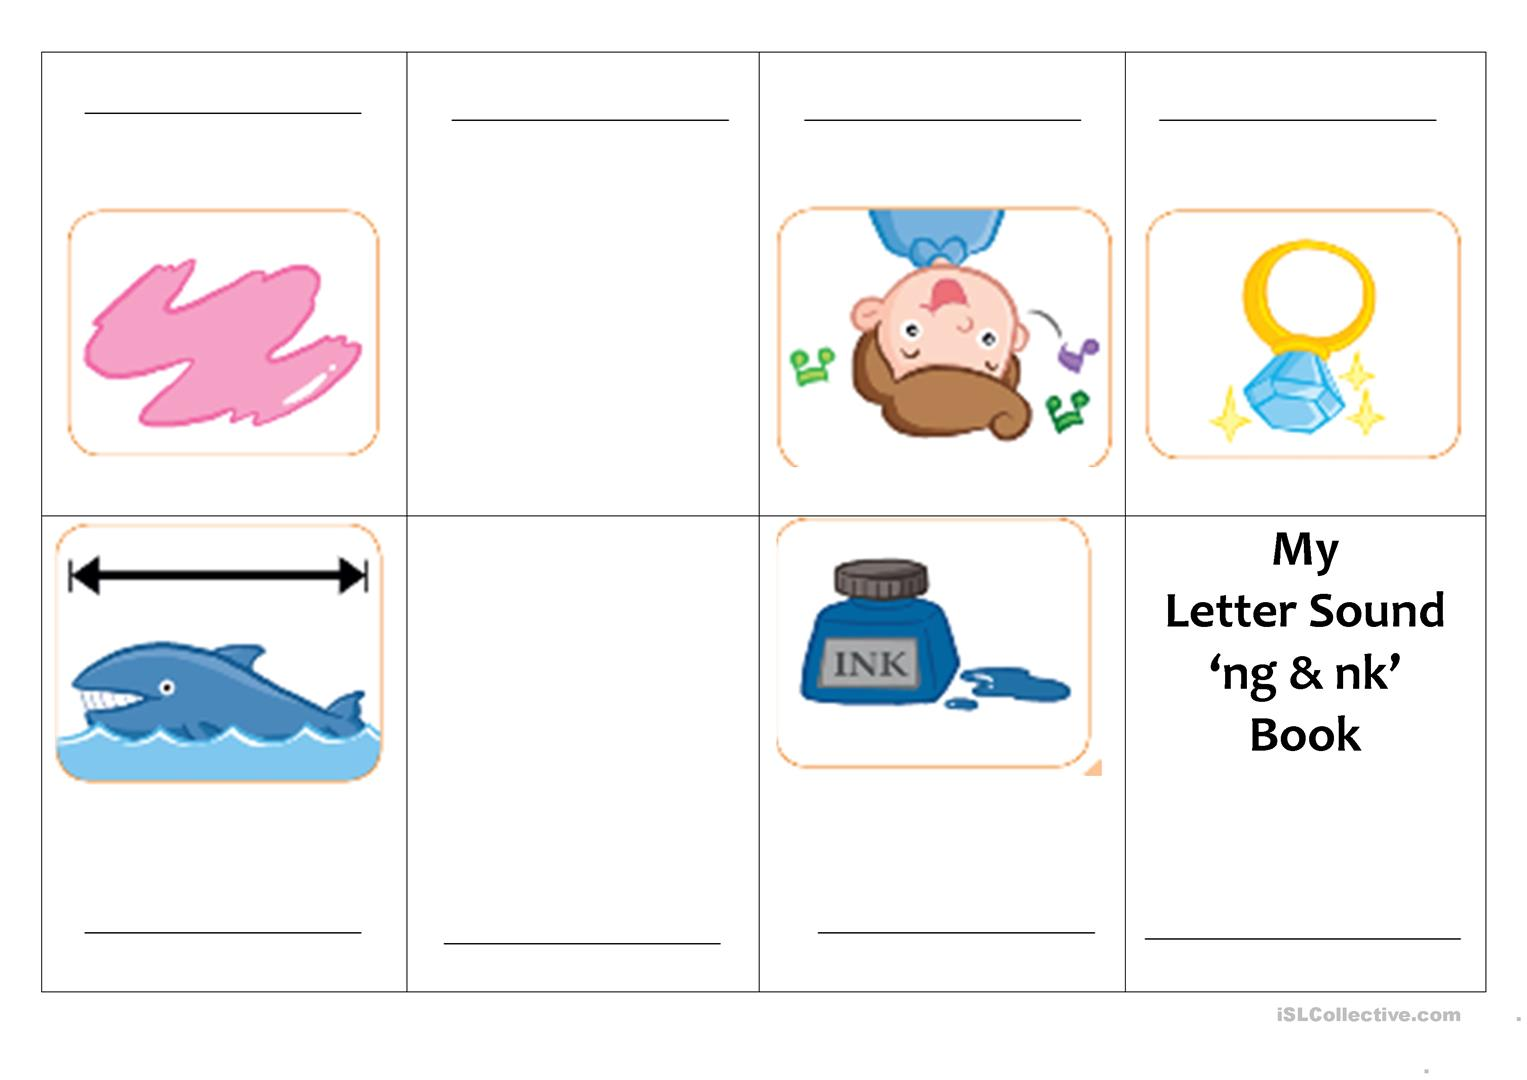 Mini Book Letter Sound Of Ng Amp Nk Worksheet